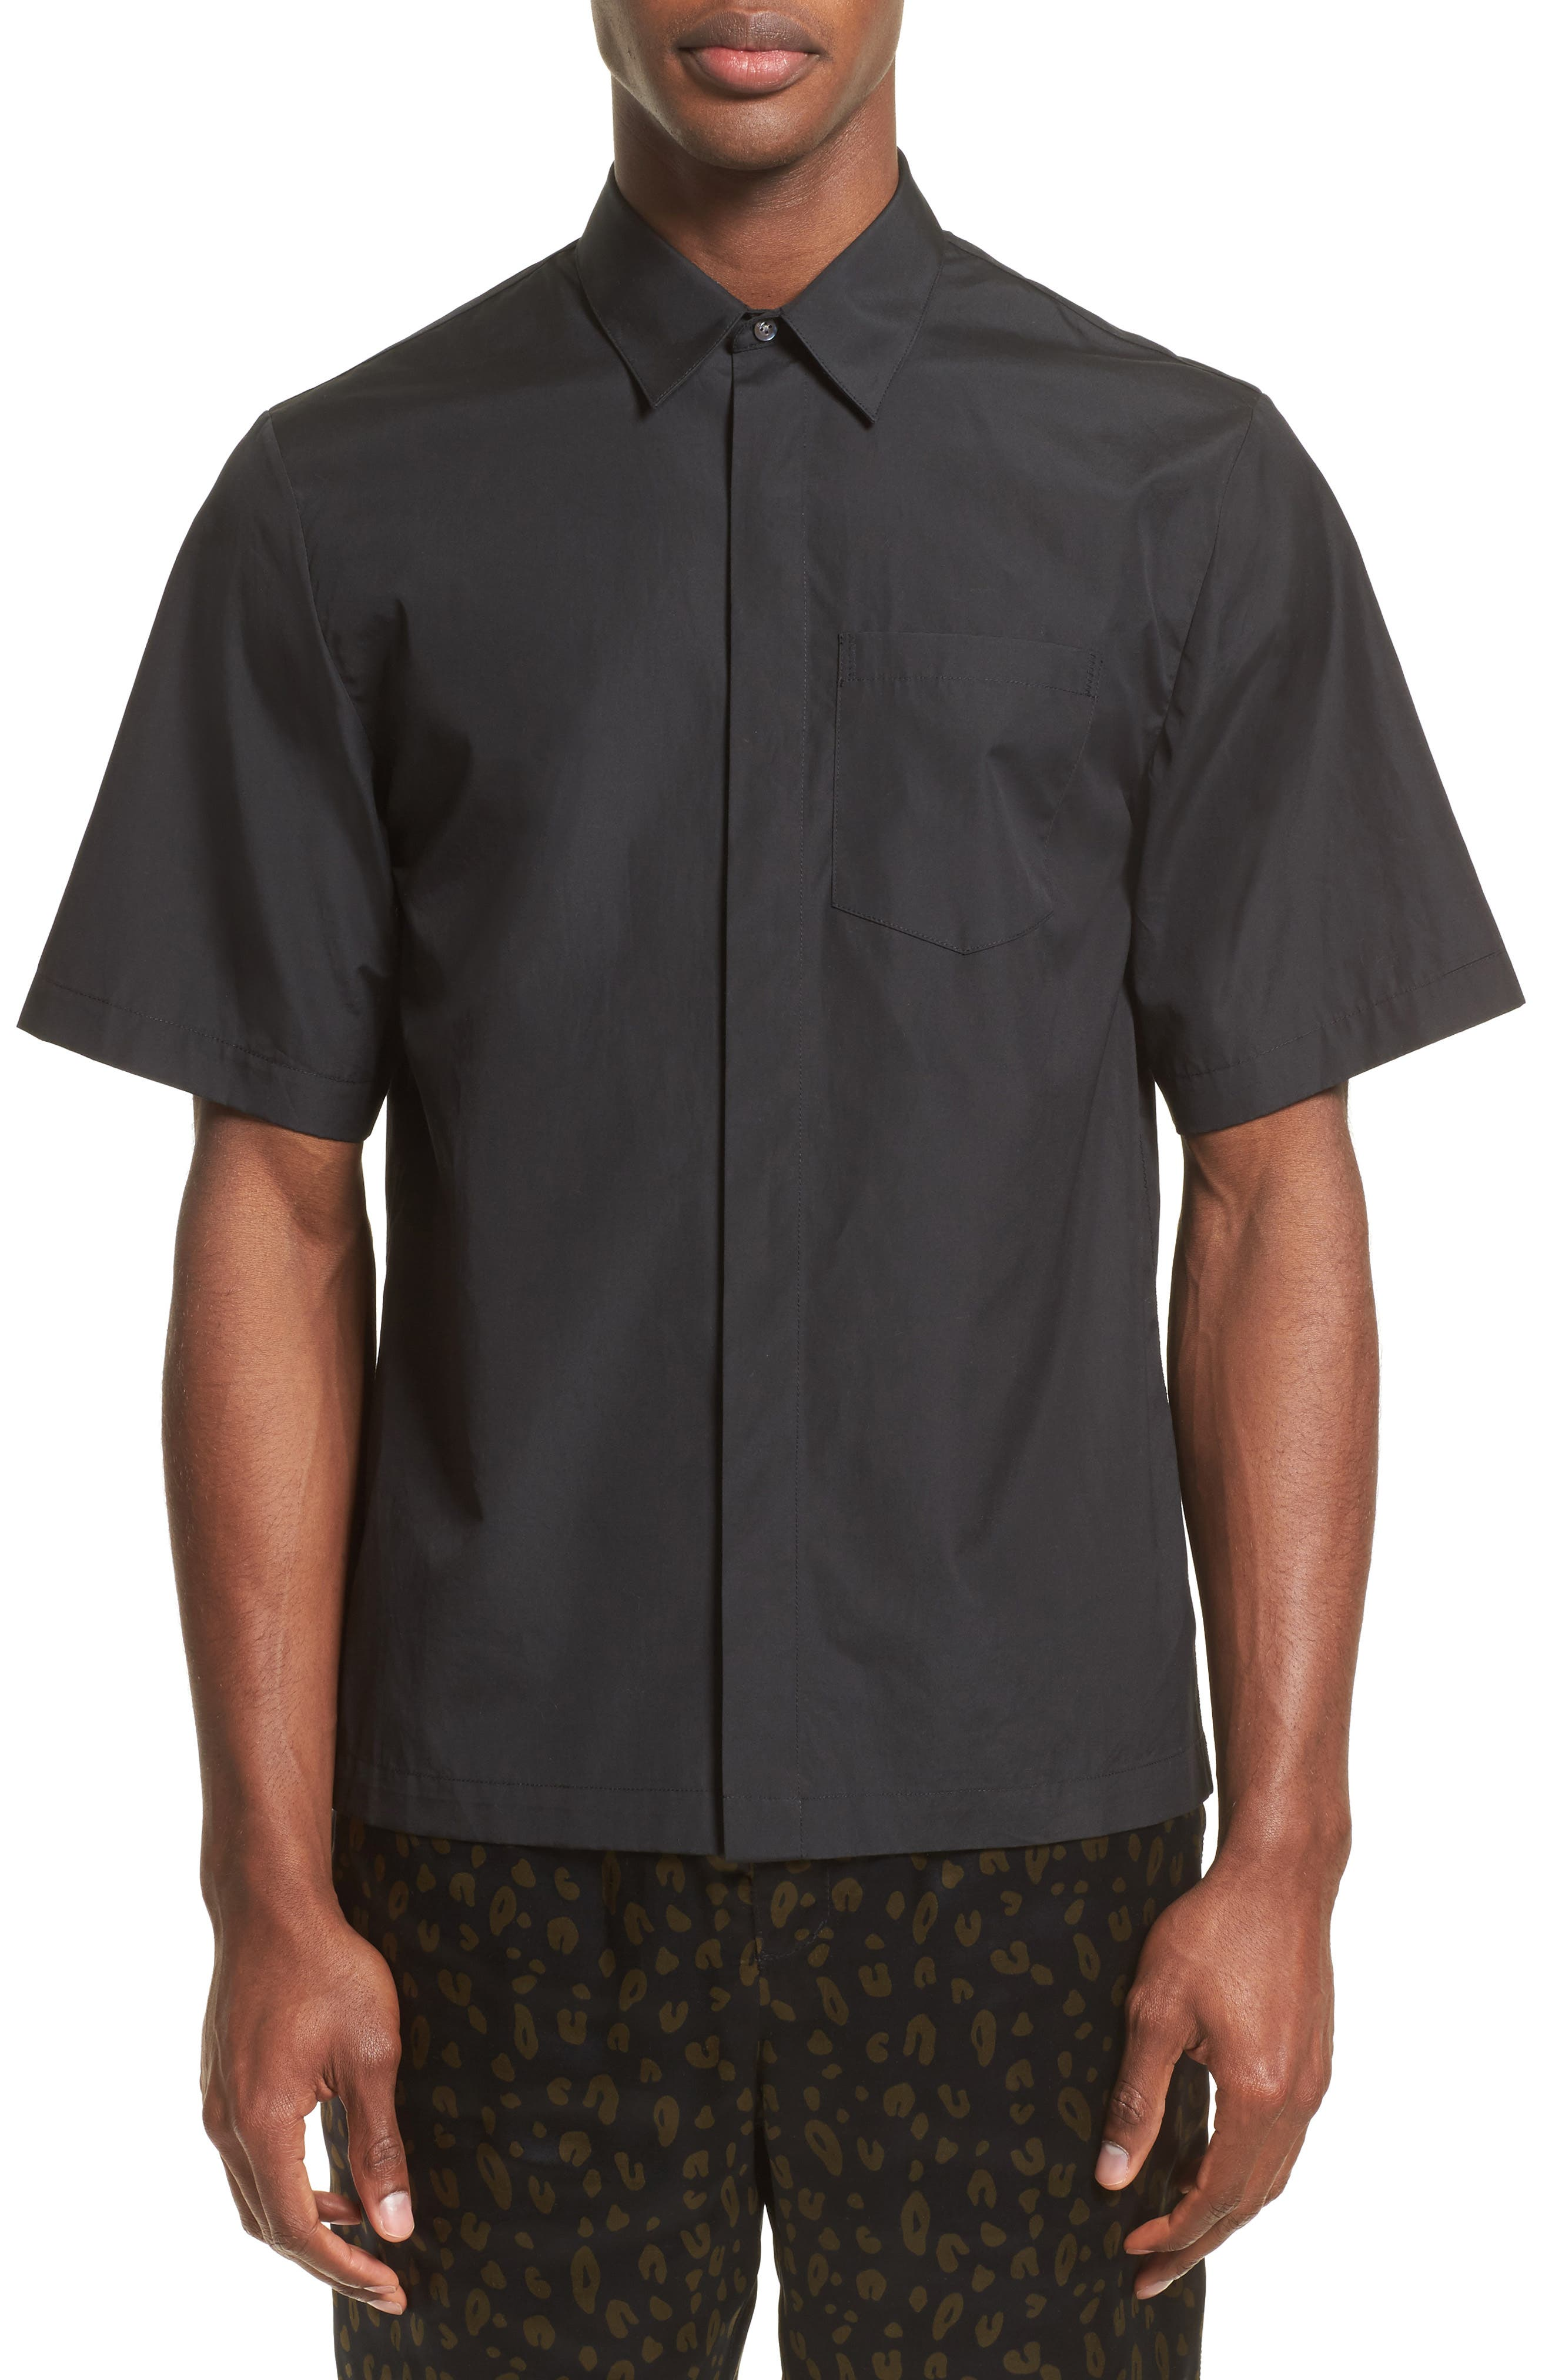 Main Image - 3.1 Phillip Lim Trim Fit Sport Shirt